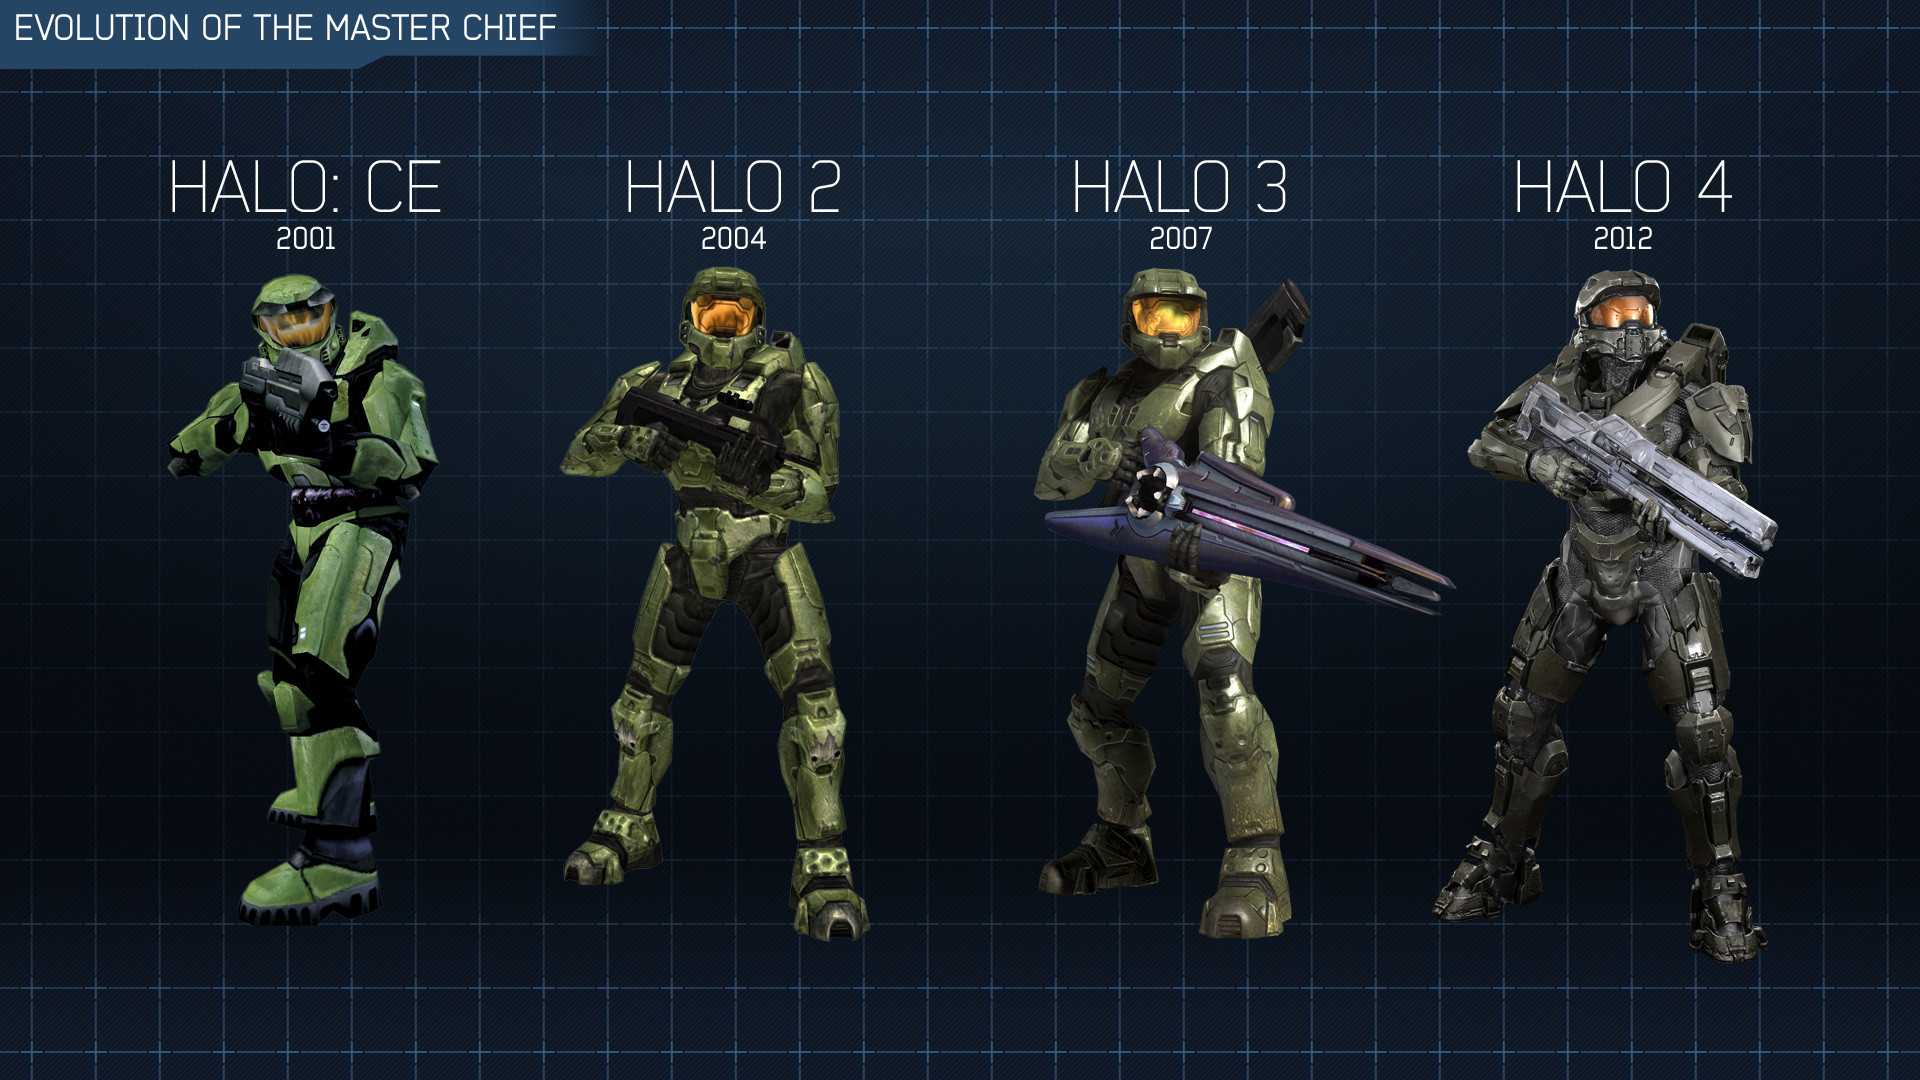 Halo 4 Wallpaper 1080p 75 Images